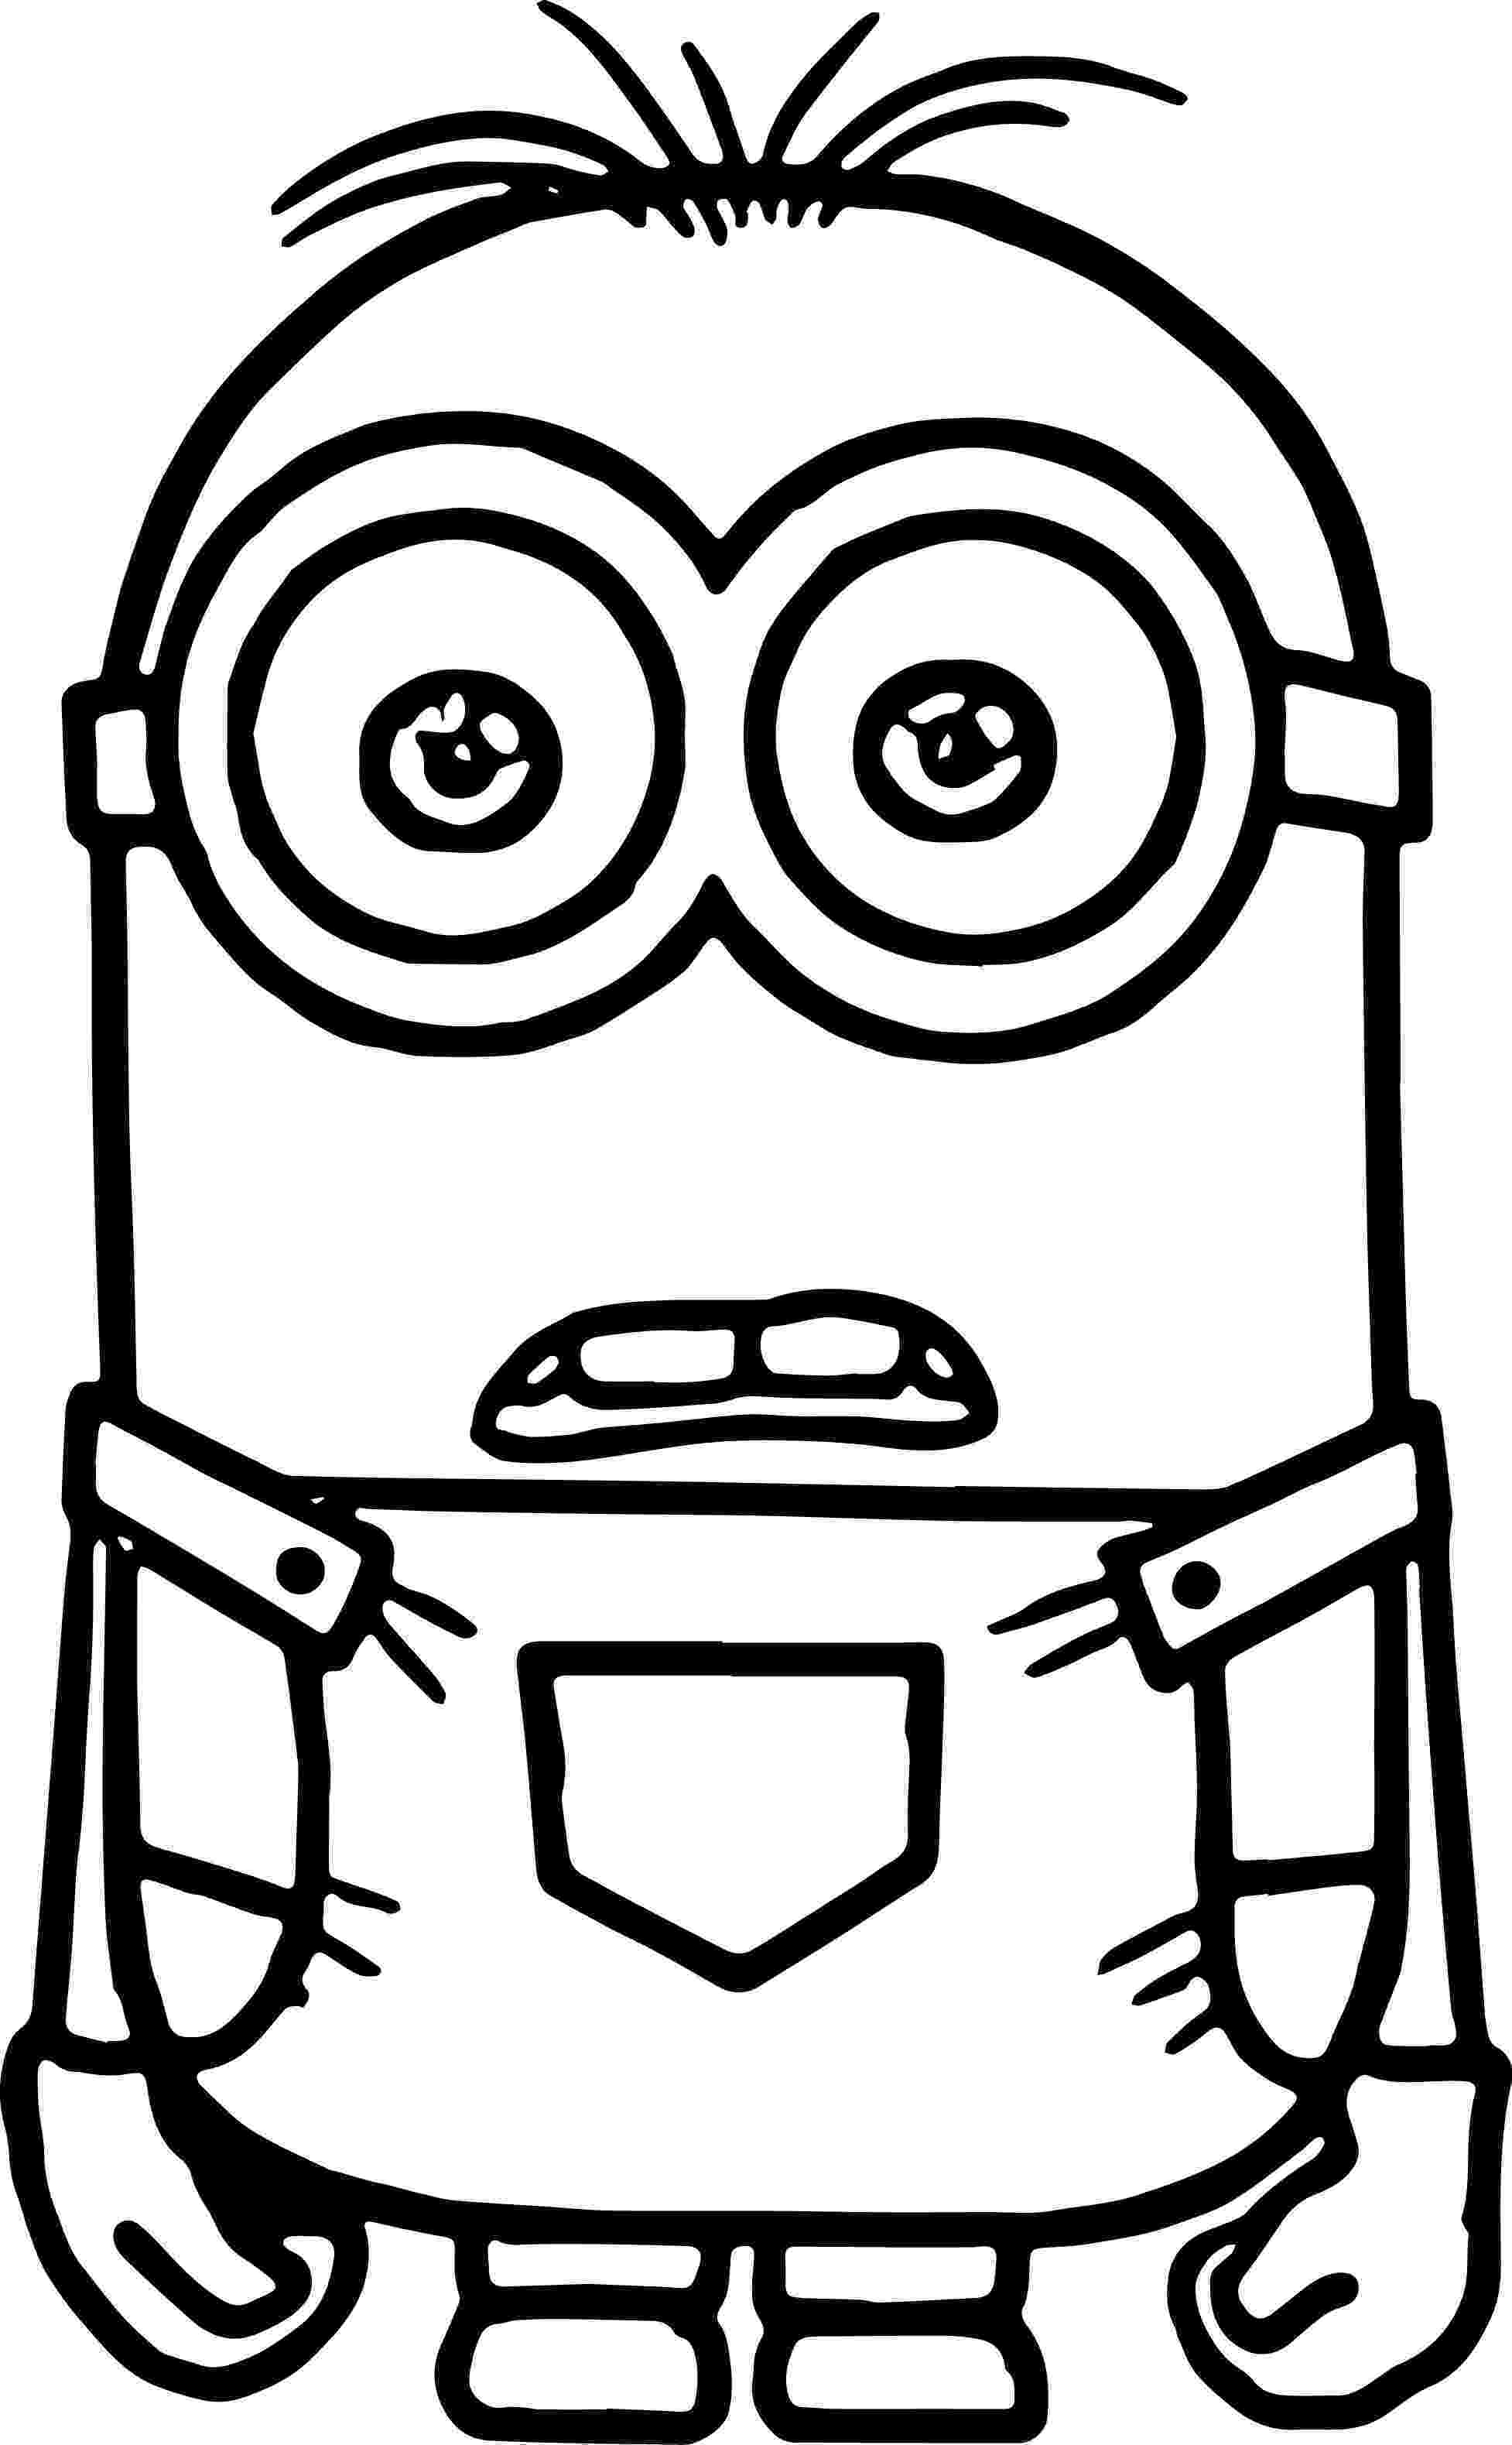 coloring pages easy minion coloring pages fotolipcom rich image and wallpaper pages coloring easy